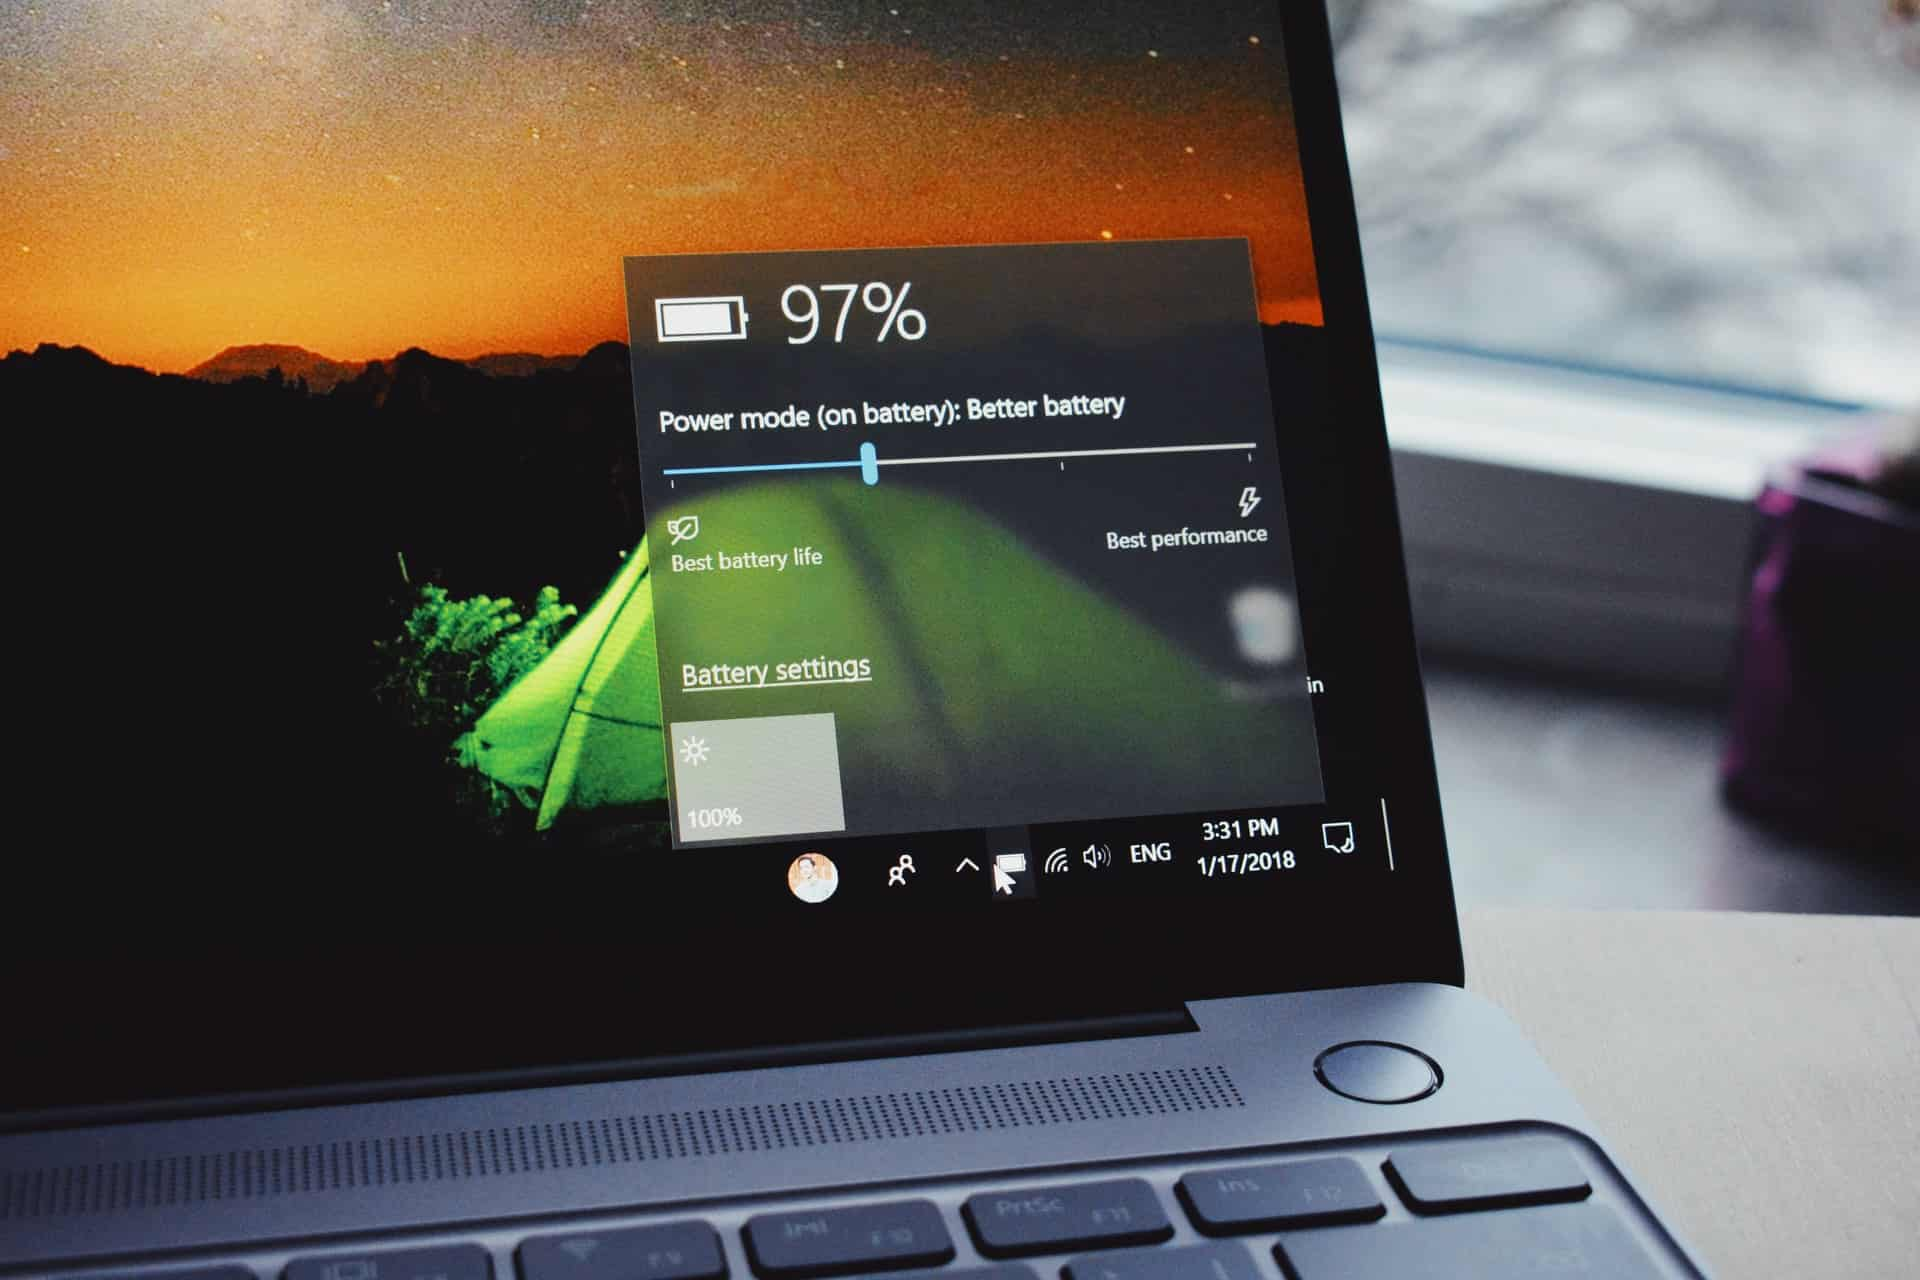 How to Improve Laptop Battery Life on Windows 10